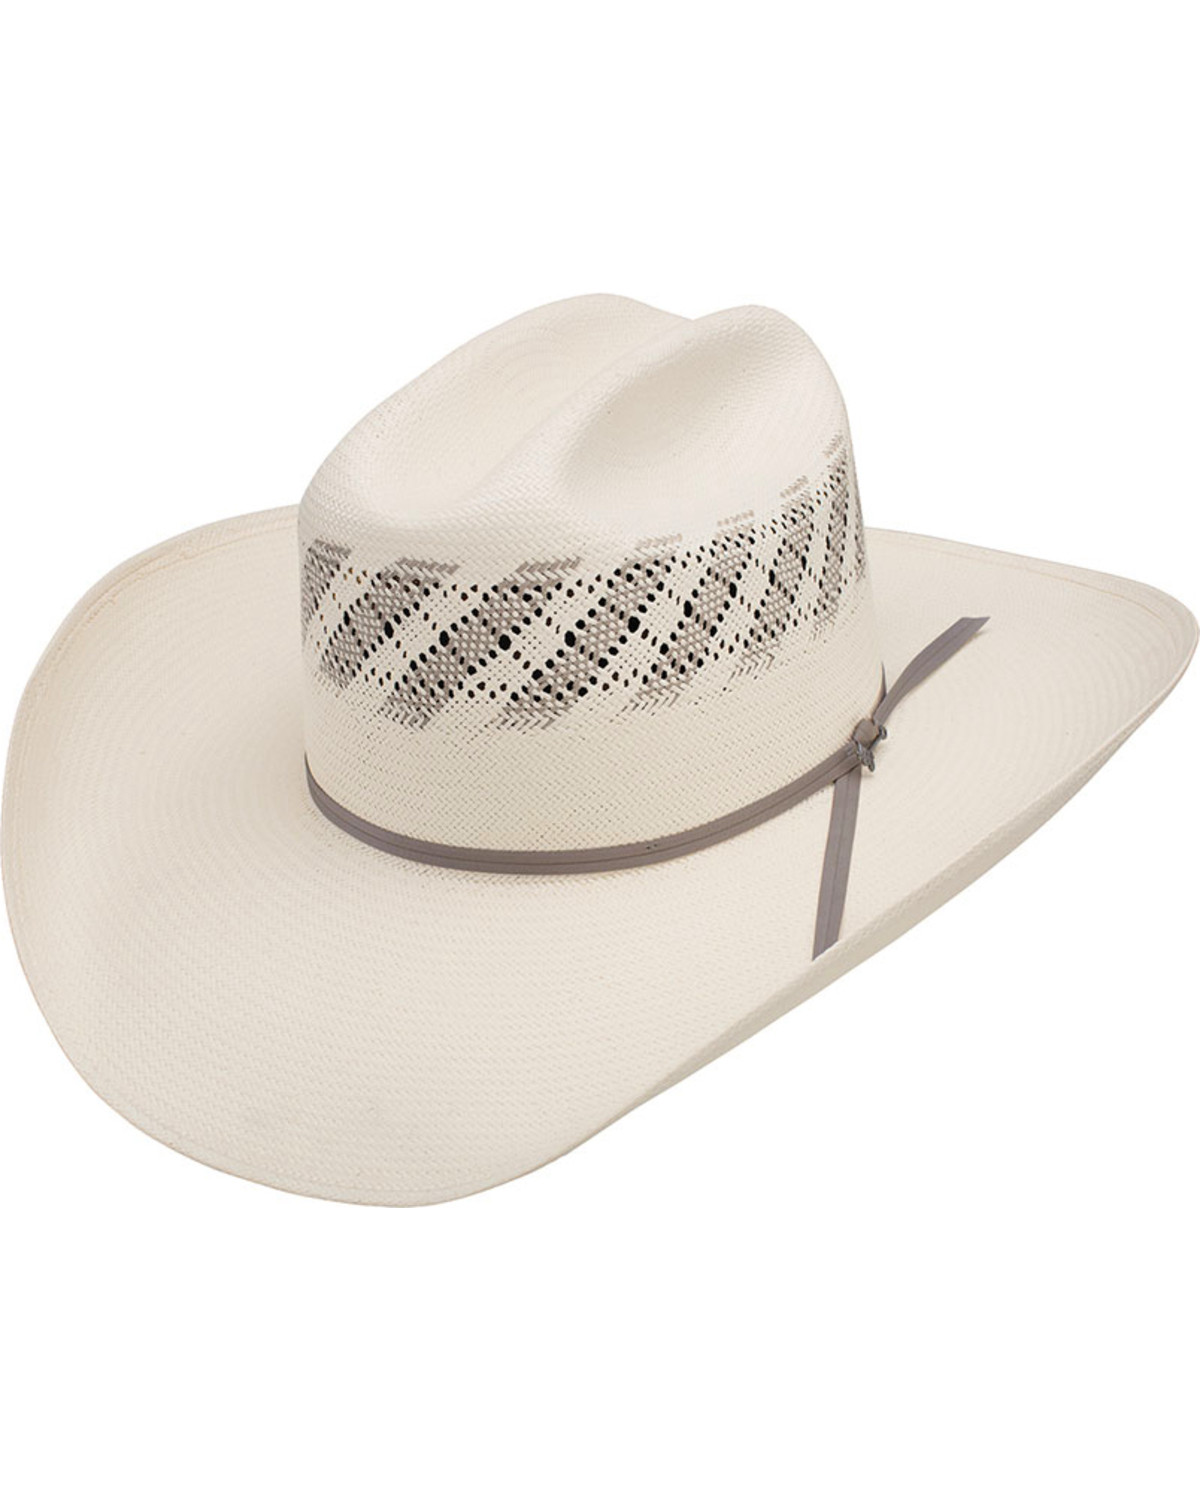 2a2bc0b6fd706 Stetson Men s Thunder 10x Straw Hat